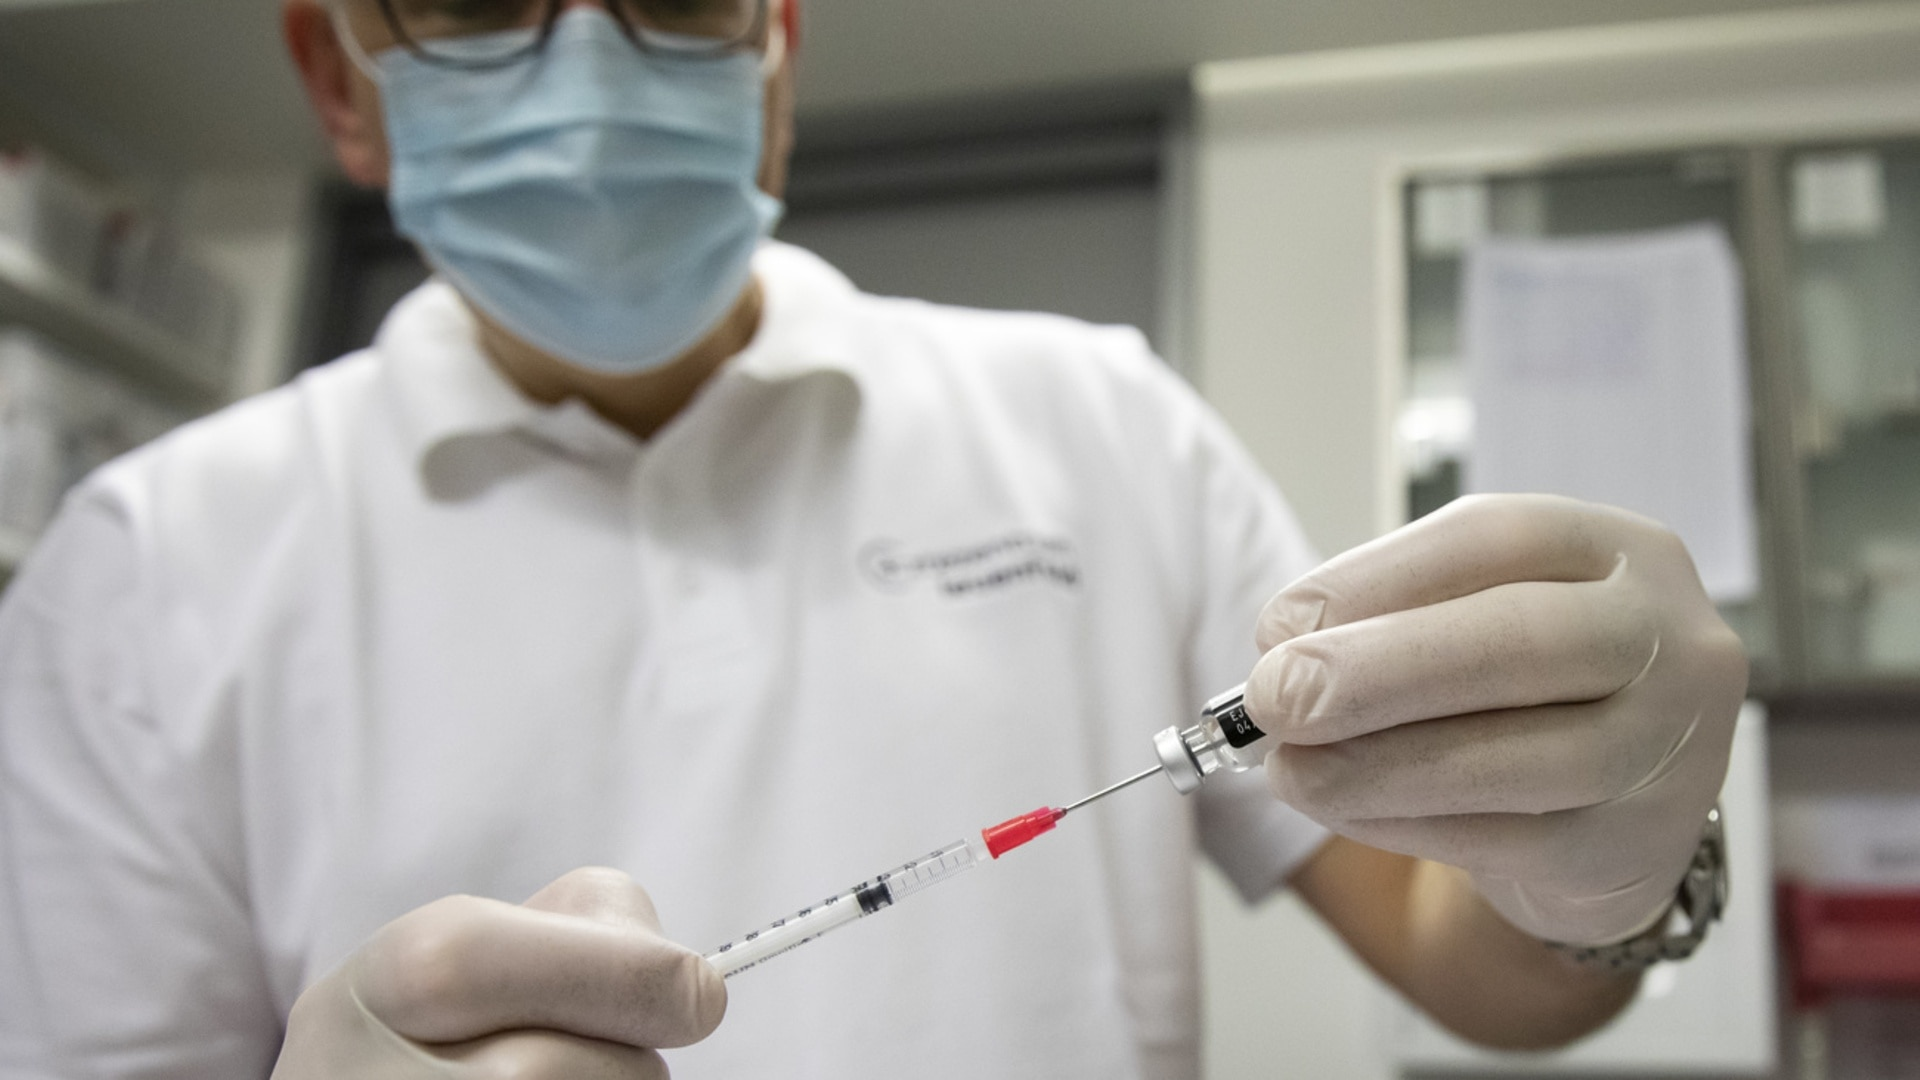 Swiss affected by Pfizer-BioNTech vaccine delay